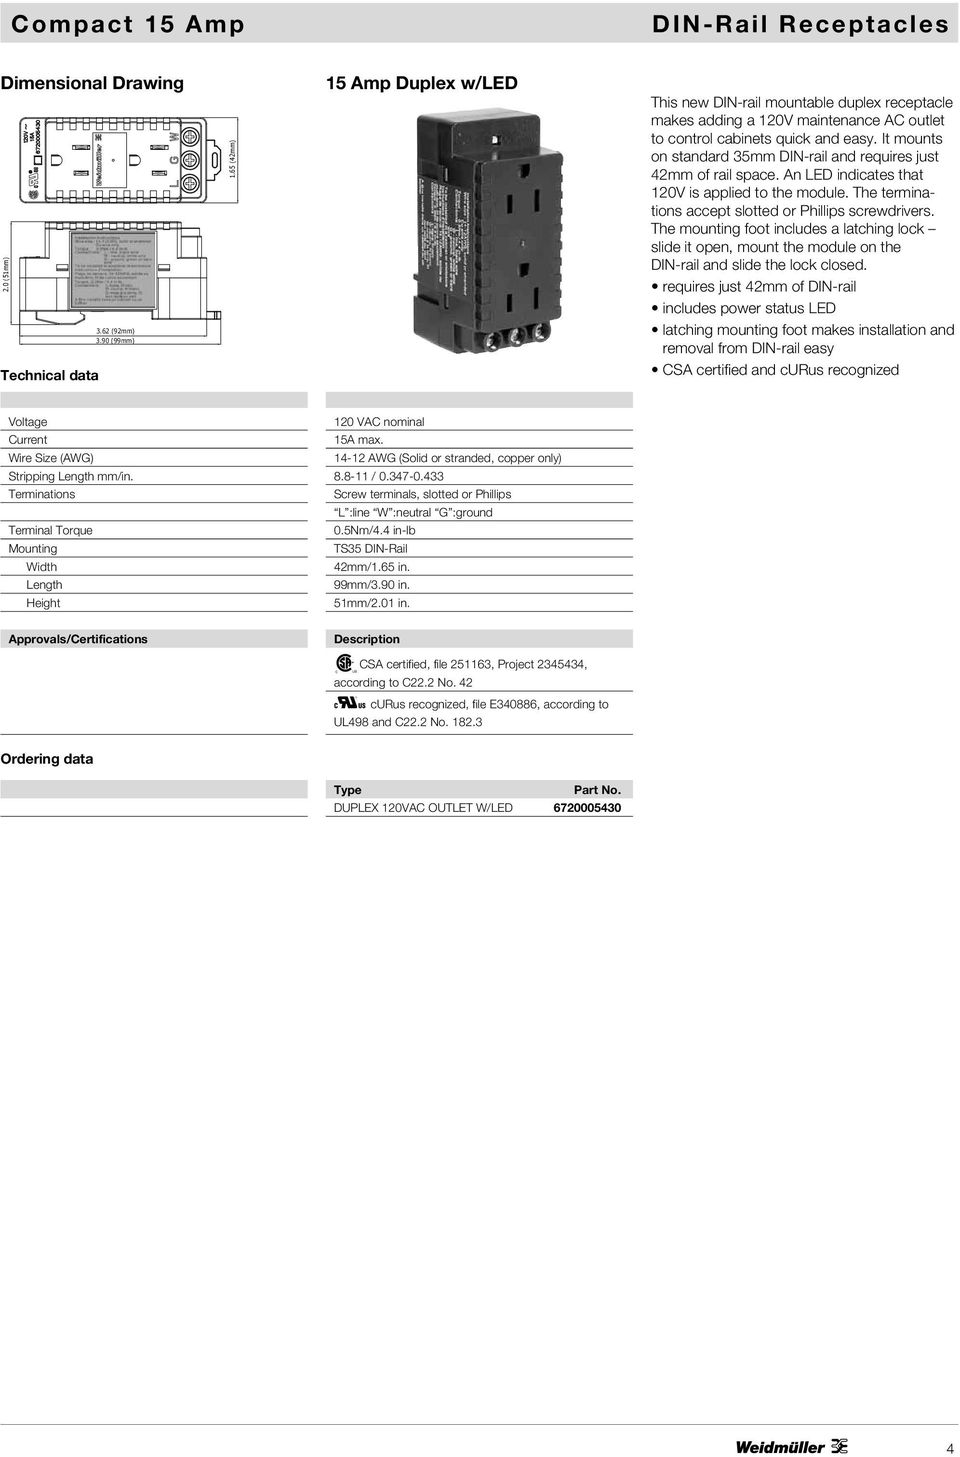 Datasheet Ac Outlet Din Rail Mountable Receptacles Pdf Gfci Receptacle With Led Screw Mount 125 Volt 20 Amp 2pole 3 It Mounts On Standard 35mm And Requires Just 42mm Of Space